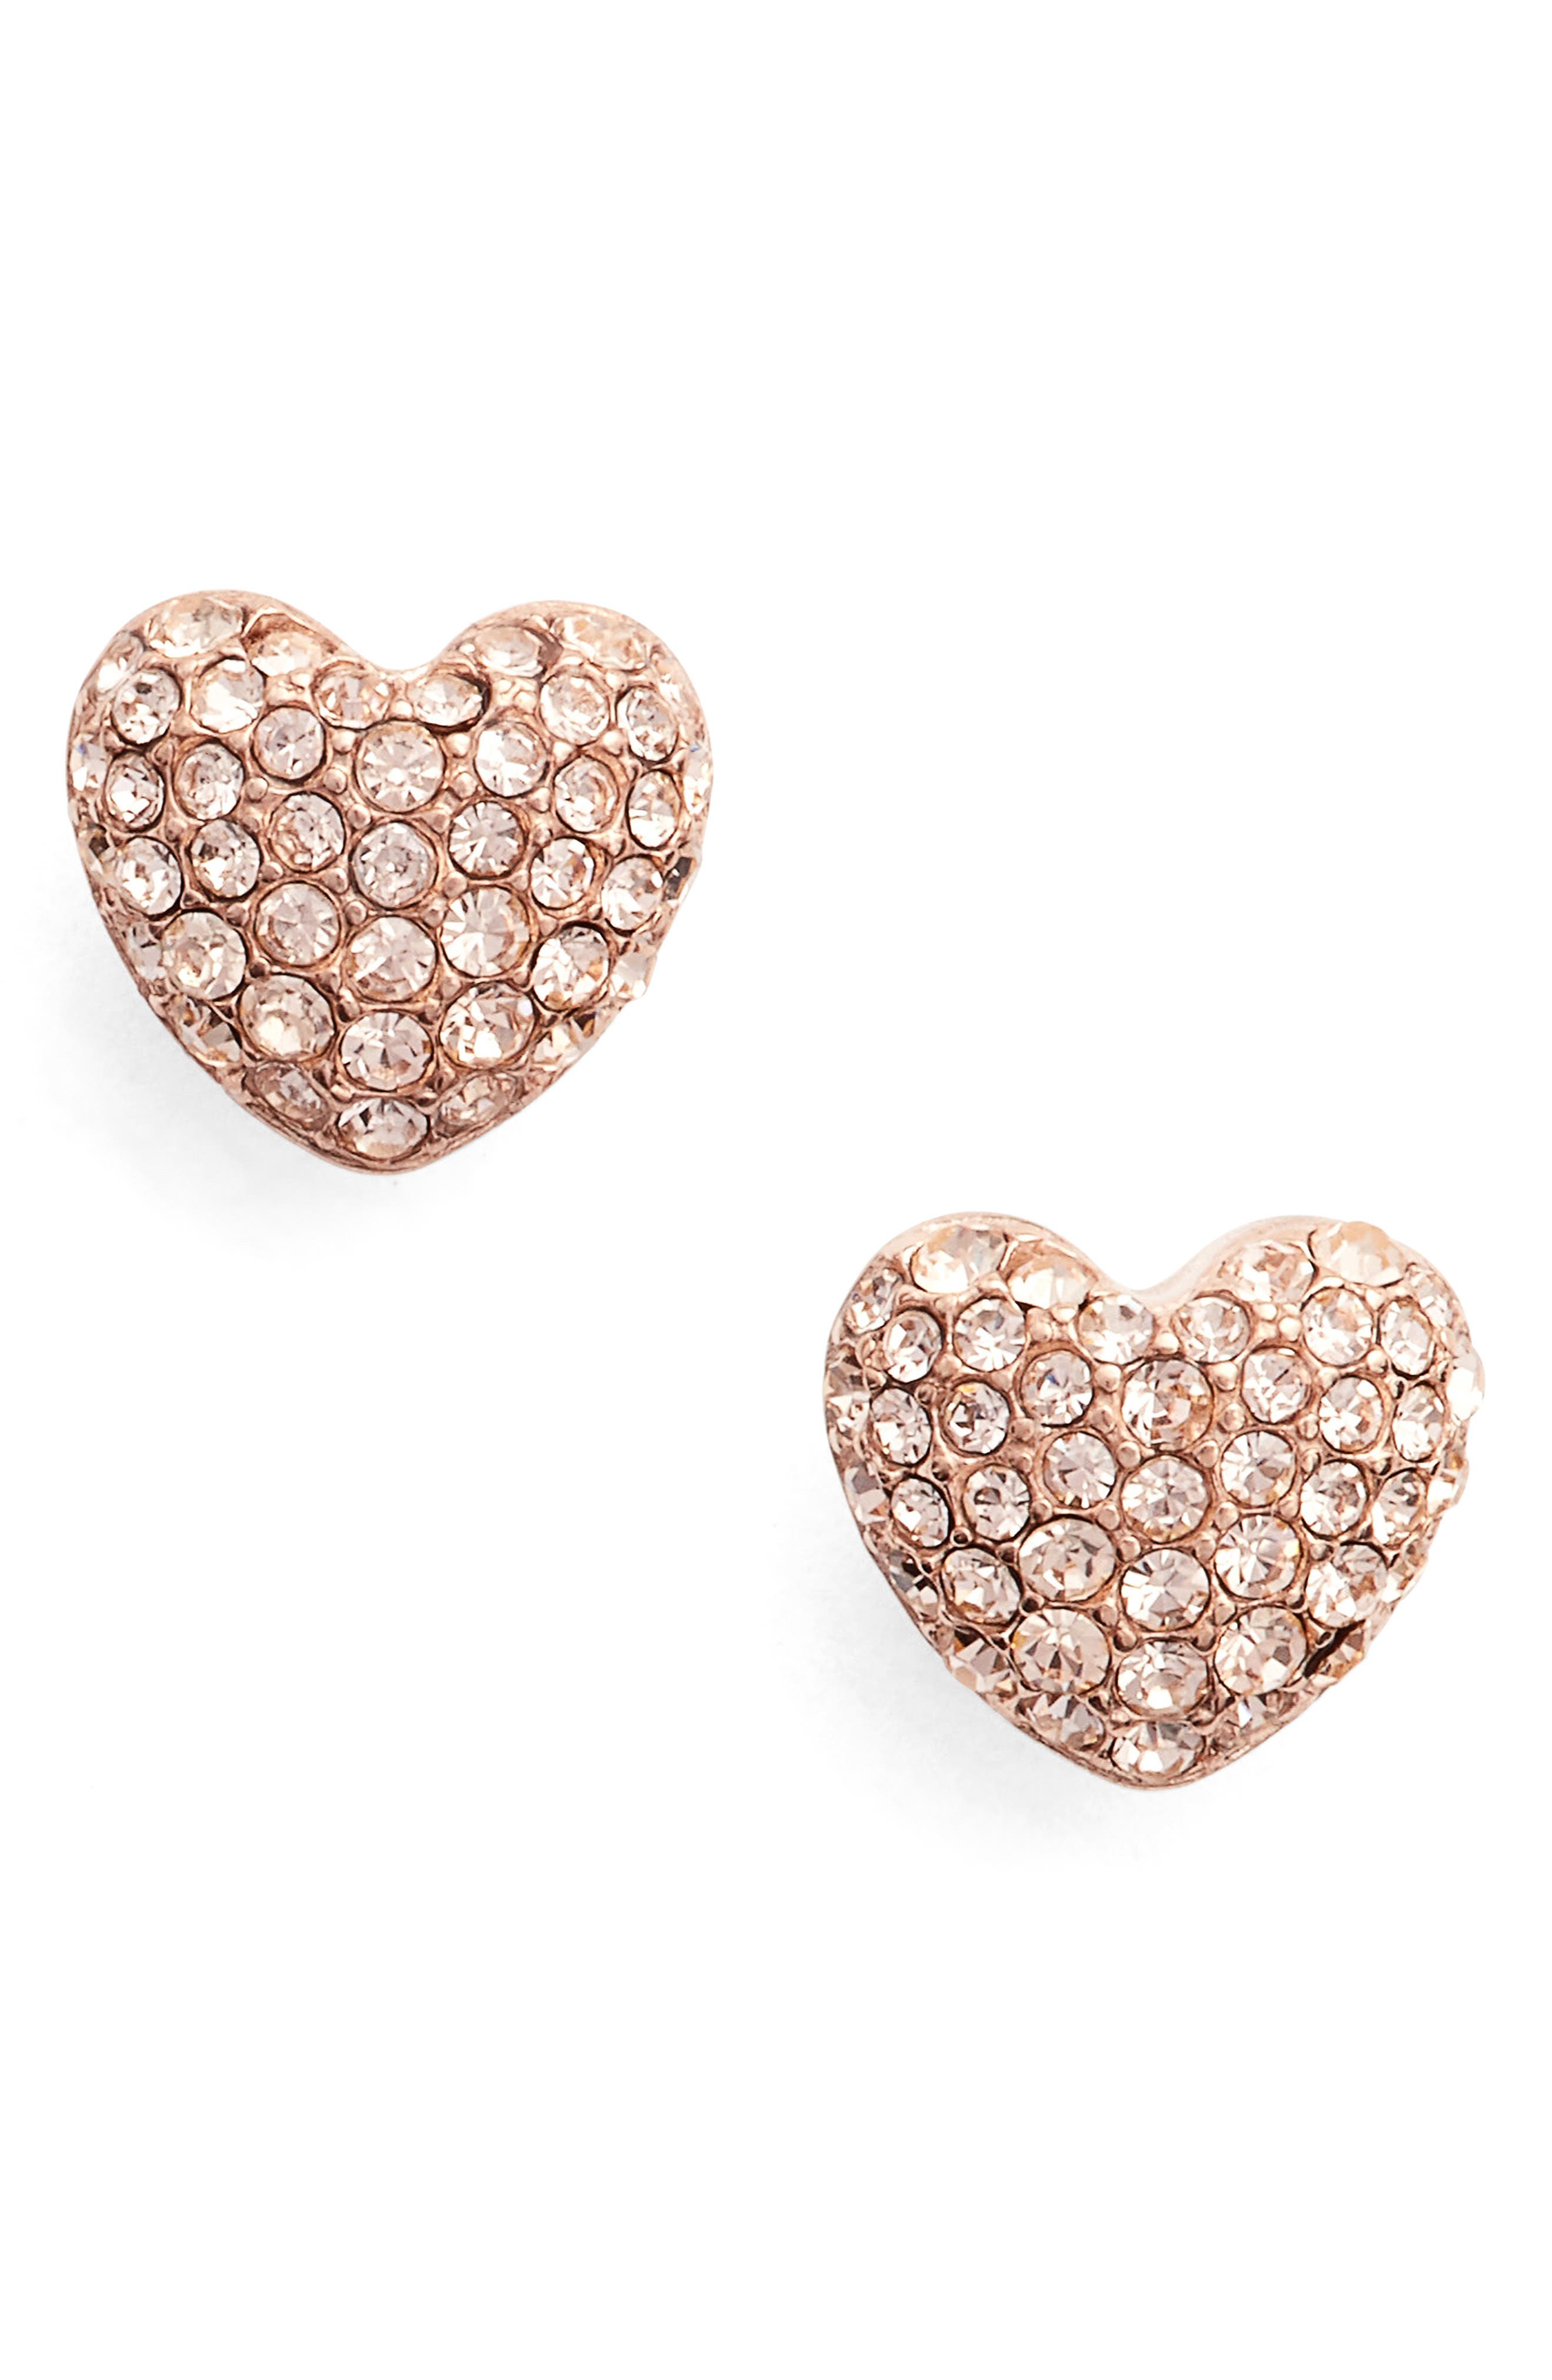 Heart Stud Earrings,                             Main thumbnail 1, color,                             Rose Gold